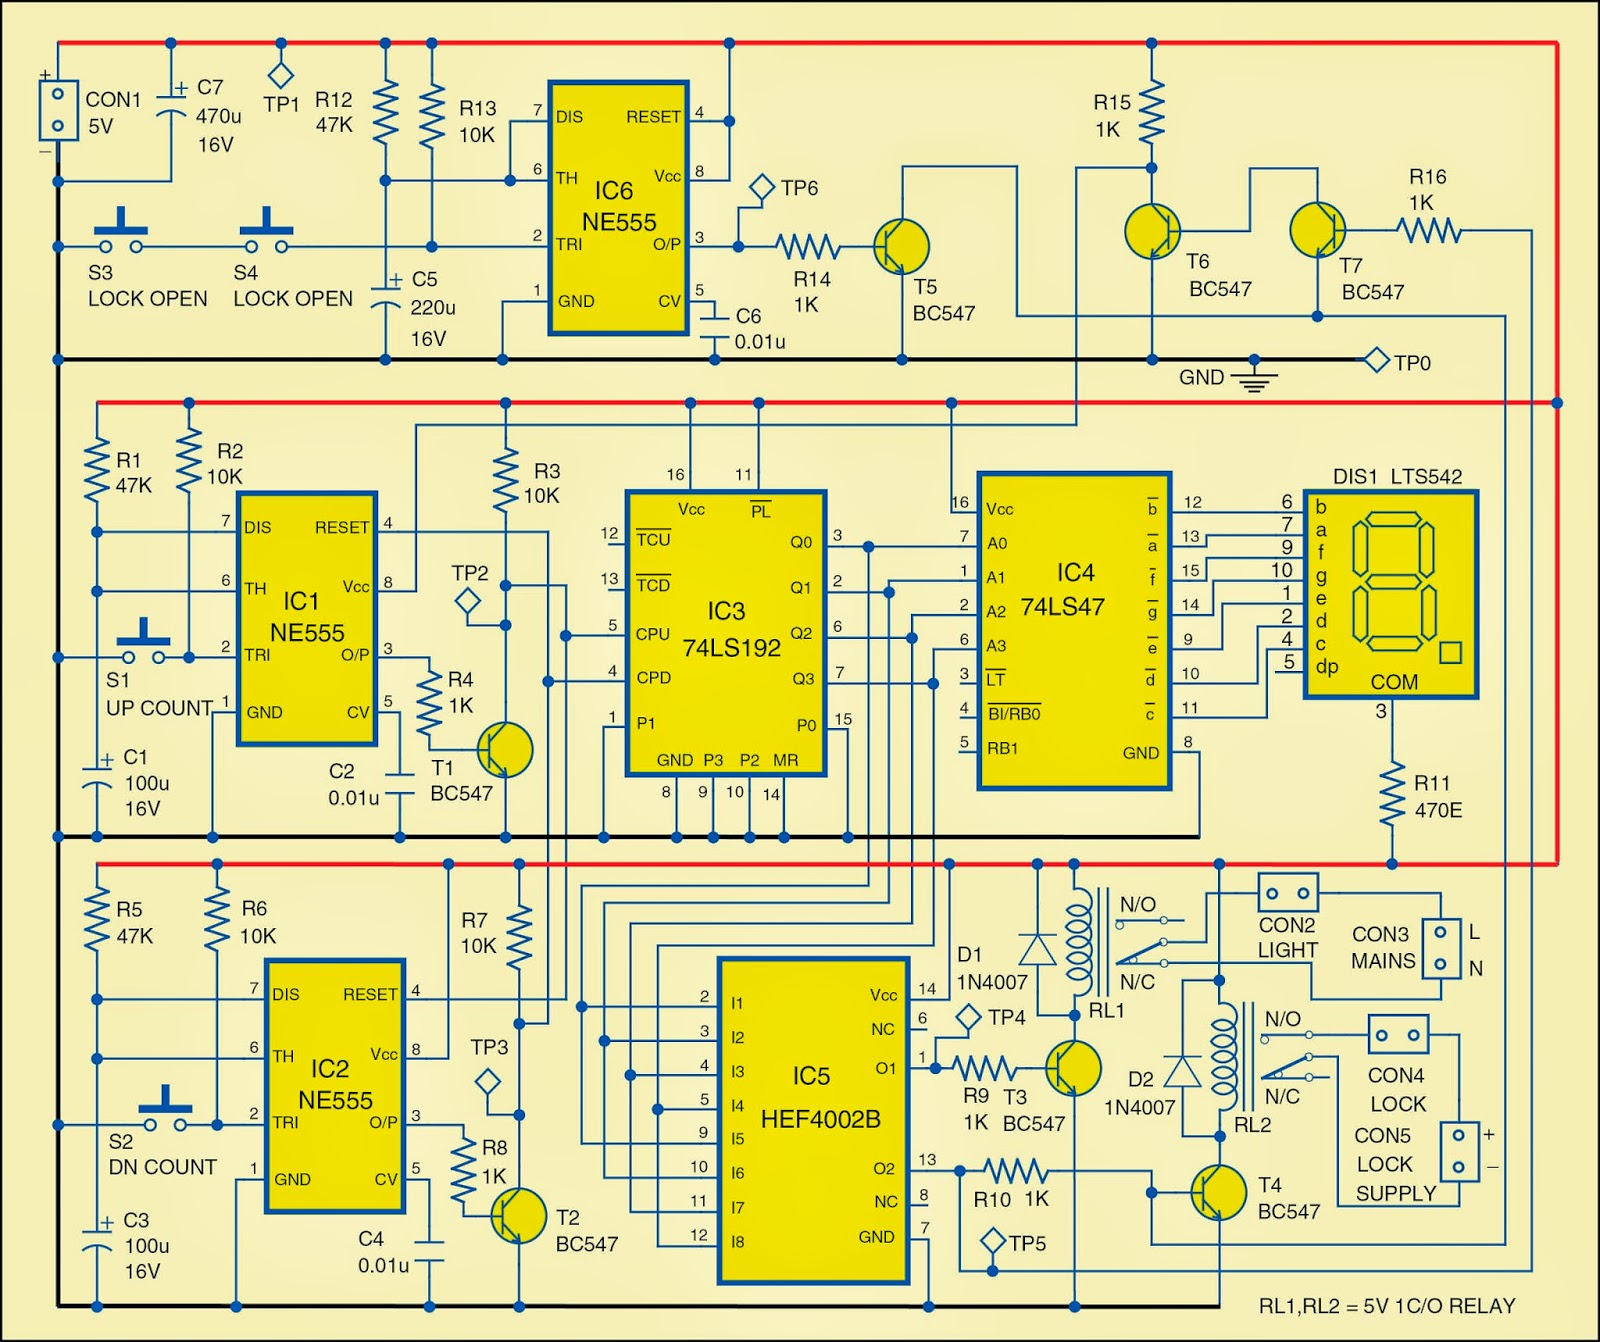 medium resolution of automatic room lock and lights circuit diagram